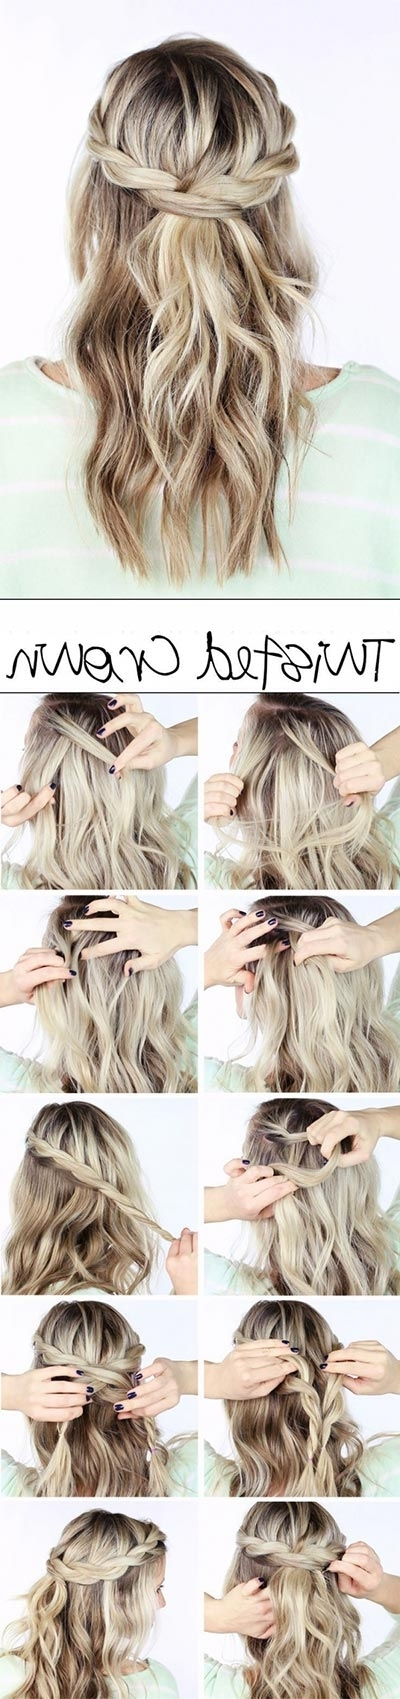 30 Most Flattering Half Up Hairstyle Tutorials To Rock Any Event With Regard To Latest Diy Half Updo Hairstyles For Long Hair (View 6 of 15)